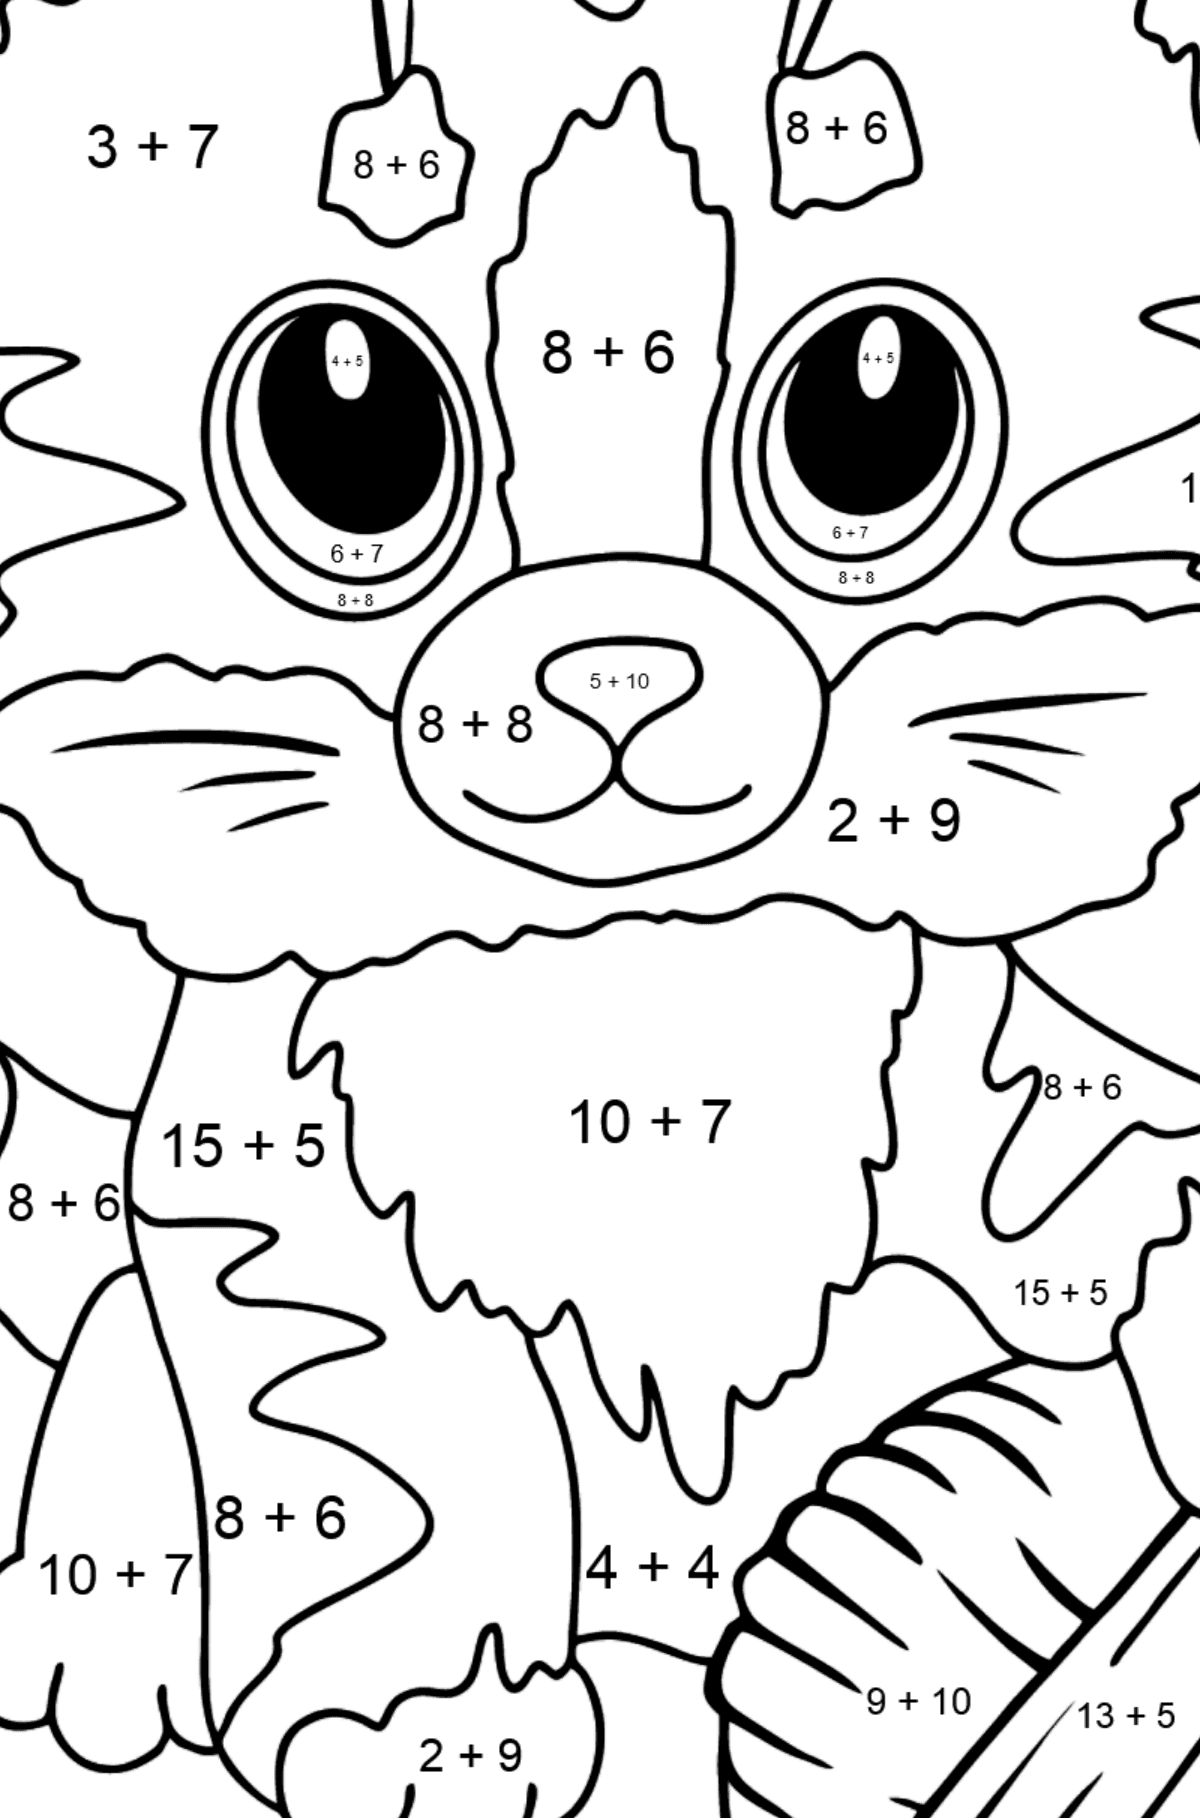 Cute Cat Coloring Page - Math Coloring - Addition for Kids